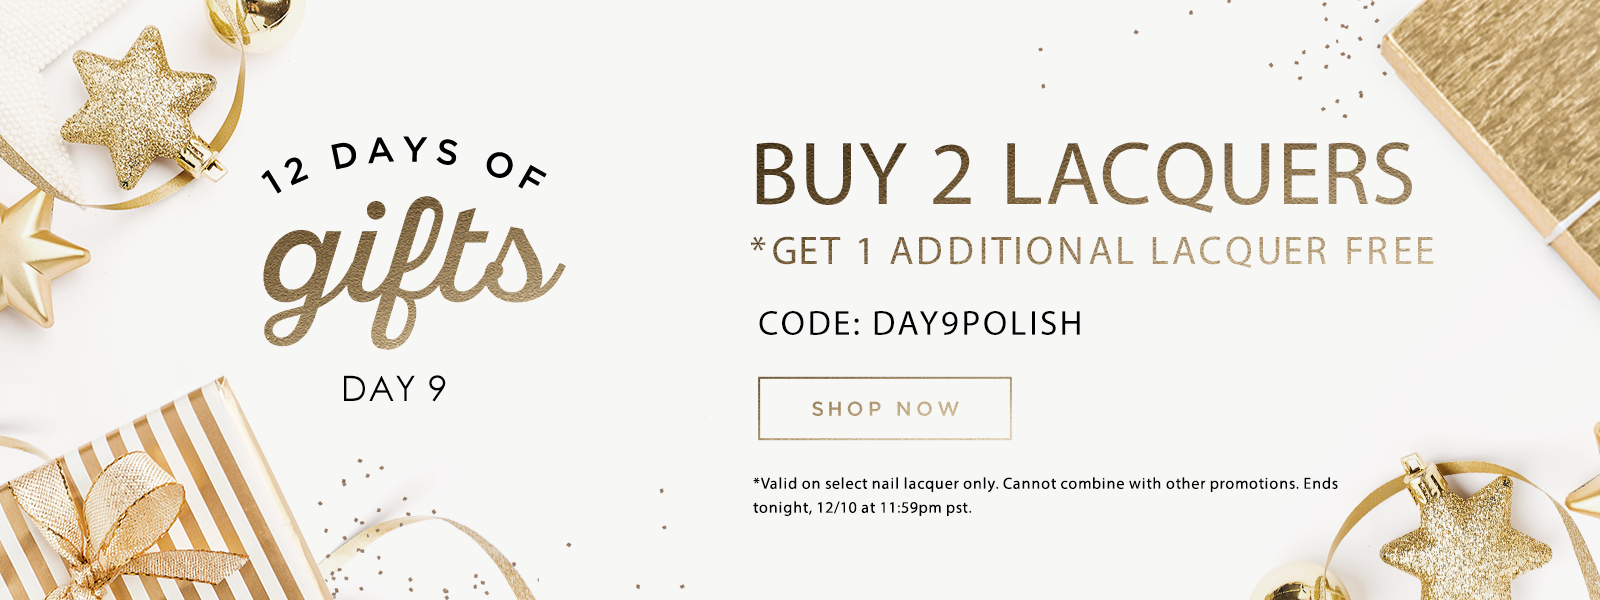 12 Days of Gifts: Day 9 - Buy 2 Lacquers, Get An Additional 1 Free